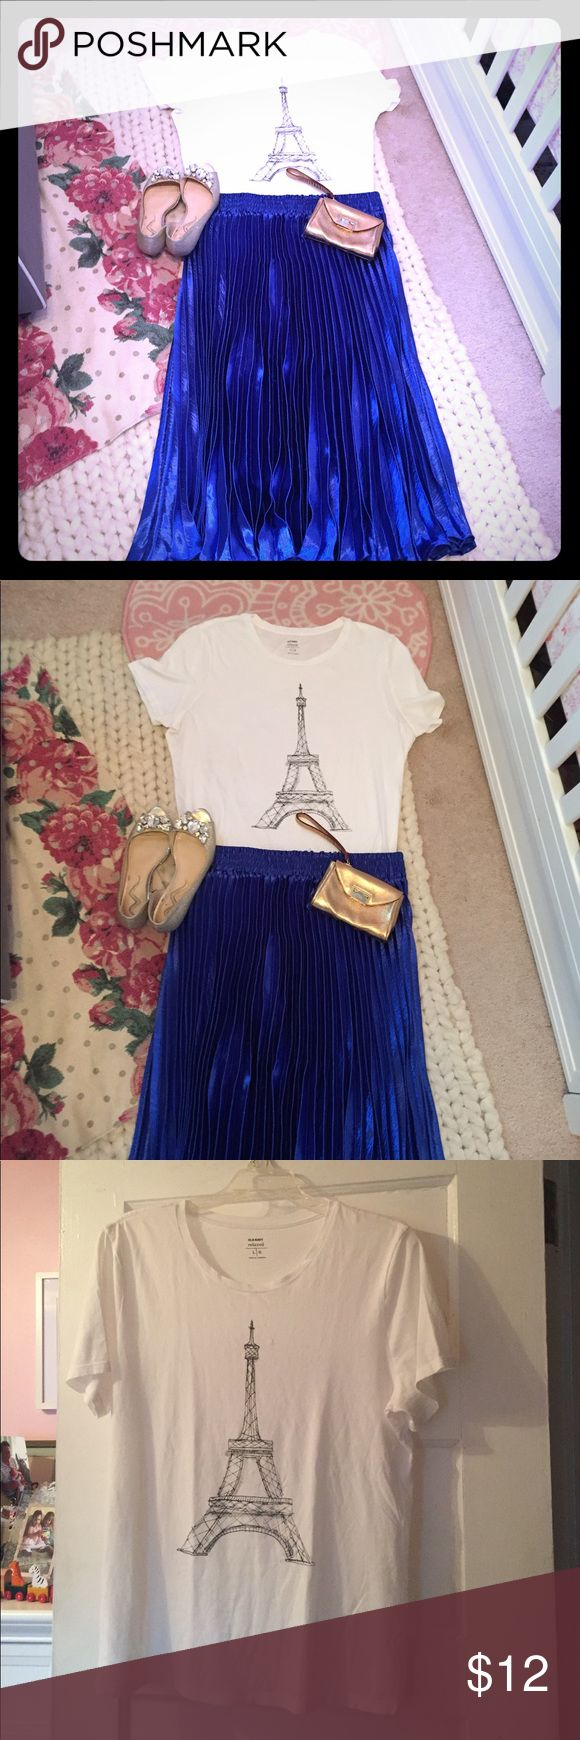 Eiffel Tower Tee White cotton relaxed tee from Old Navy with graphic pencil type sketching of the Eiffel Tower. Worn once; EUC. I love pairing casual tees with a flirty skirt so tops like this are essential for everyday looks. Old Navy Tops Tees - Short Sleeve